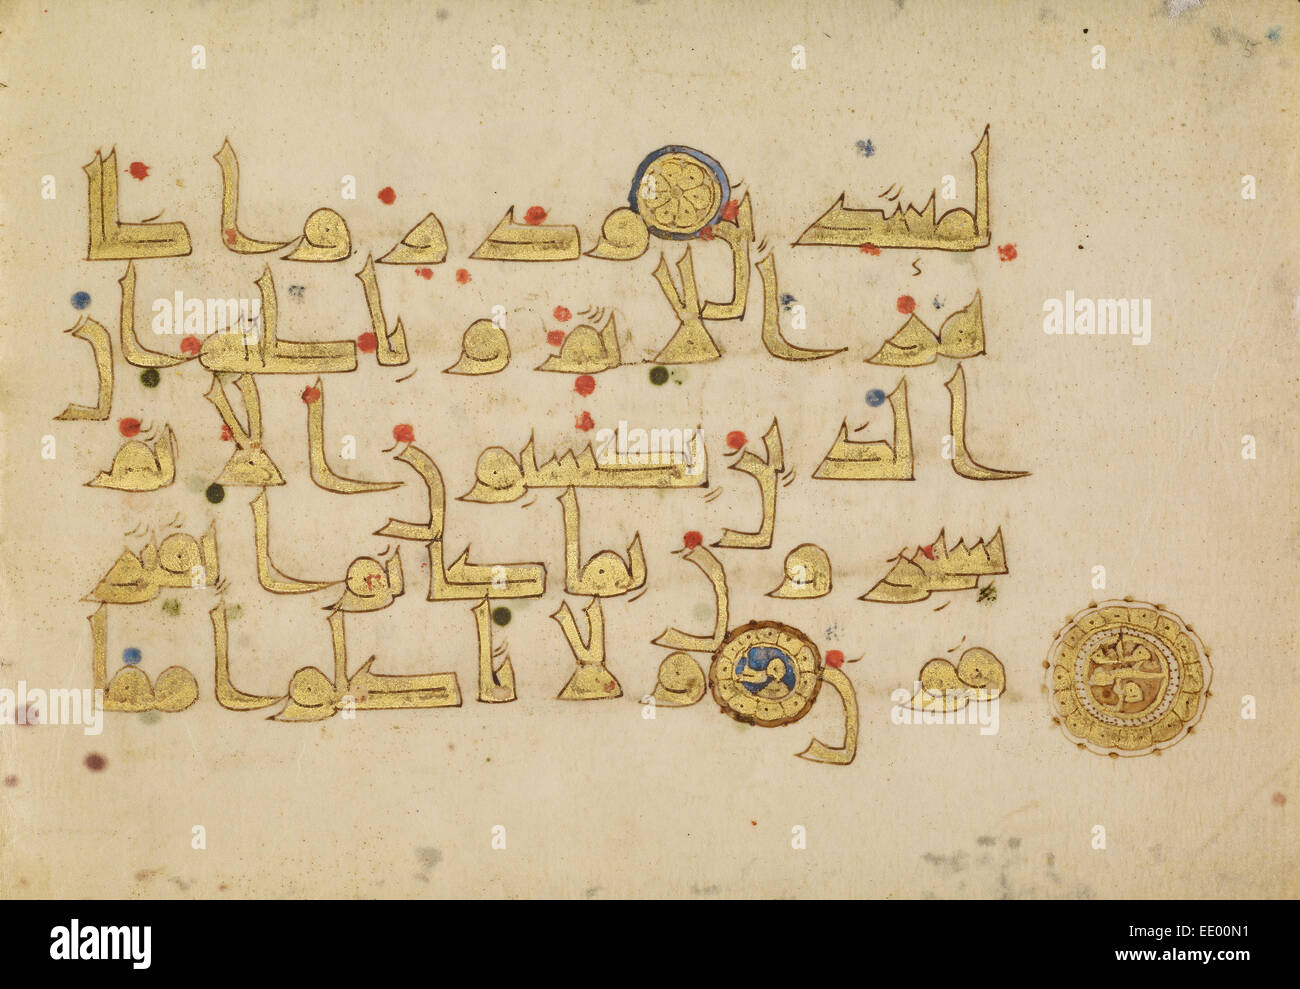 Decorated Text Page; Unknown; probably Tunisia, Africa; 9th century; Pen and ink, gold paint, and tempera colors - Stock Image